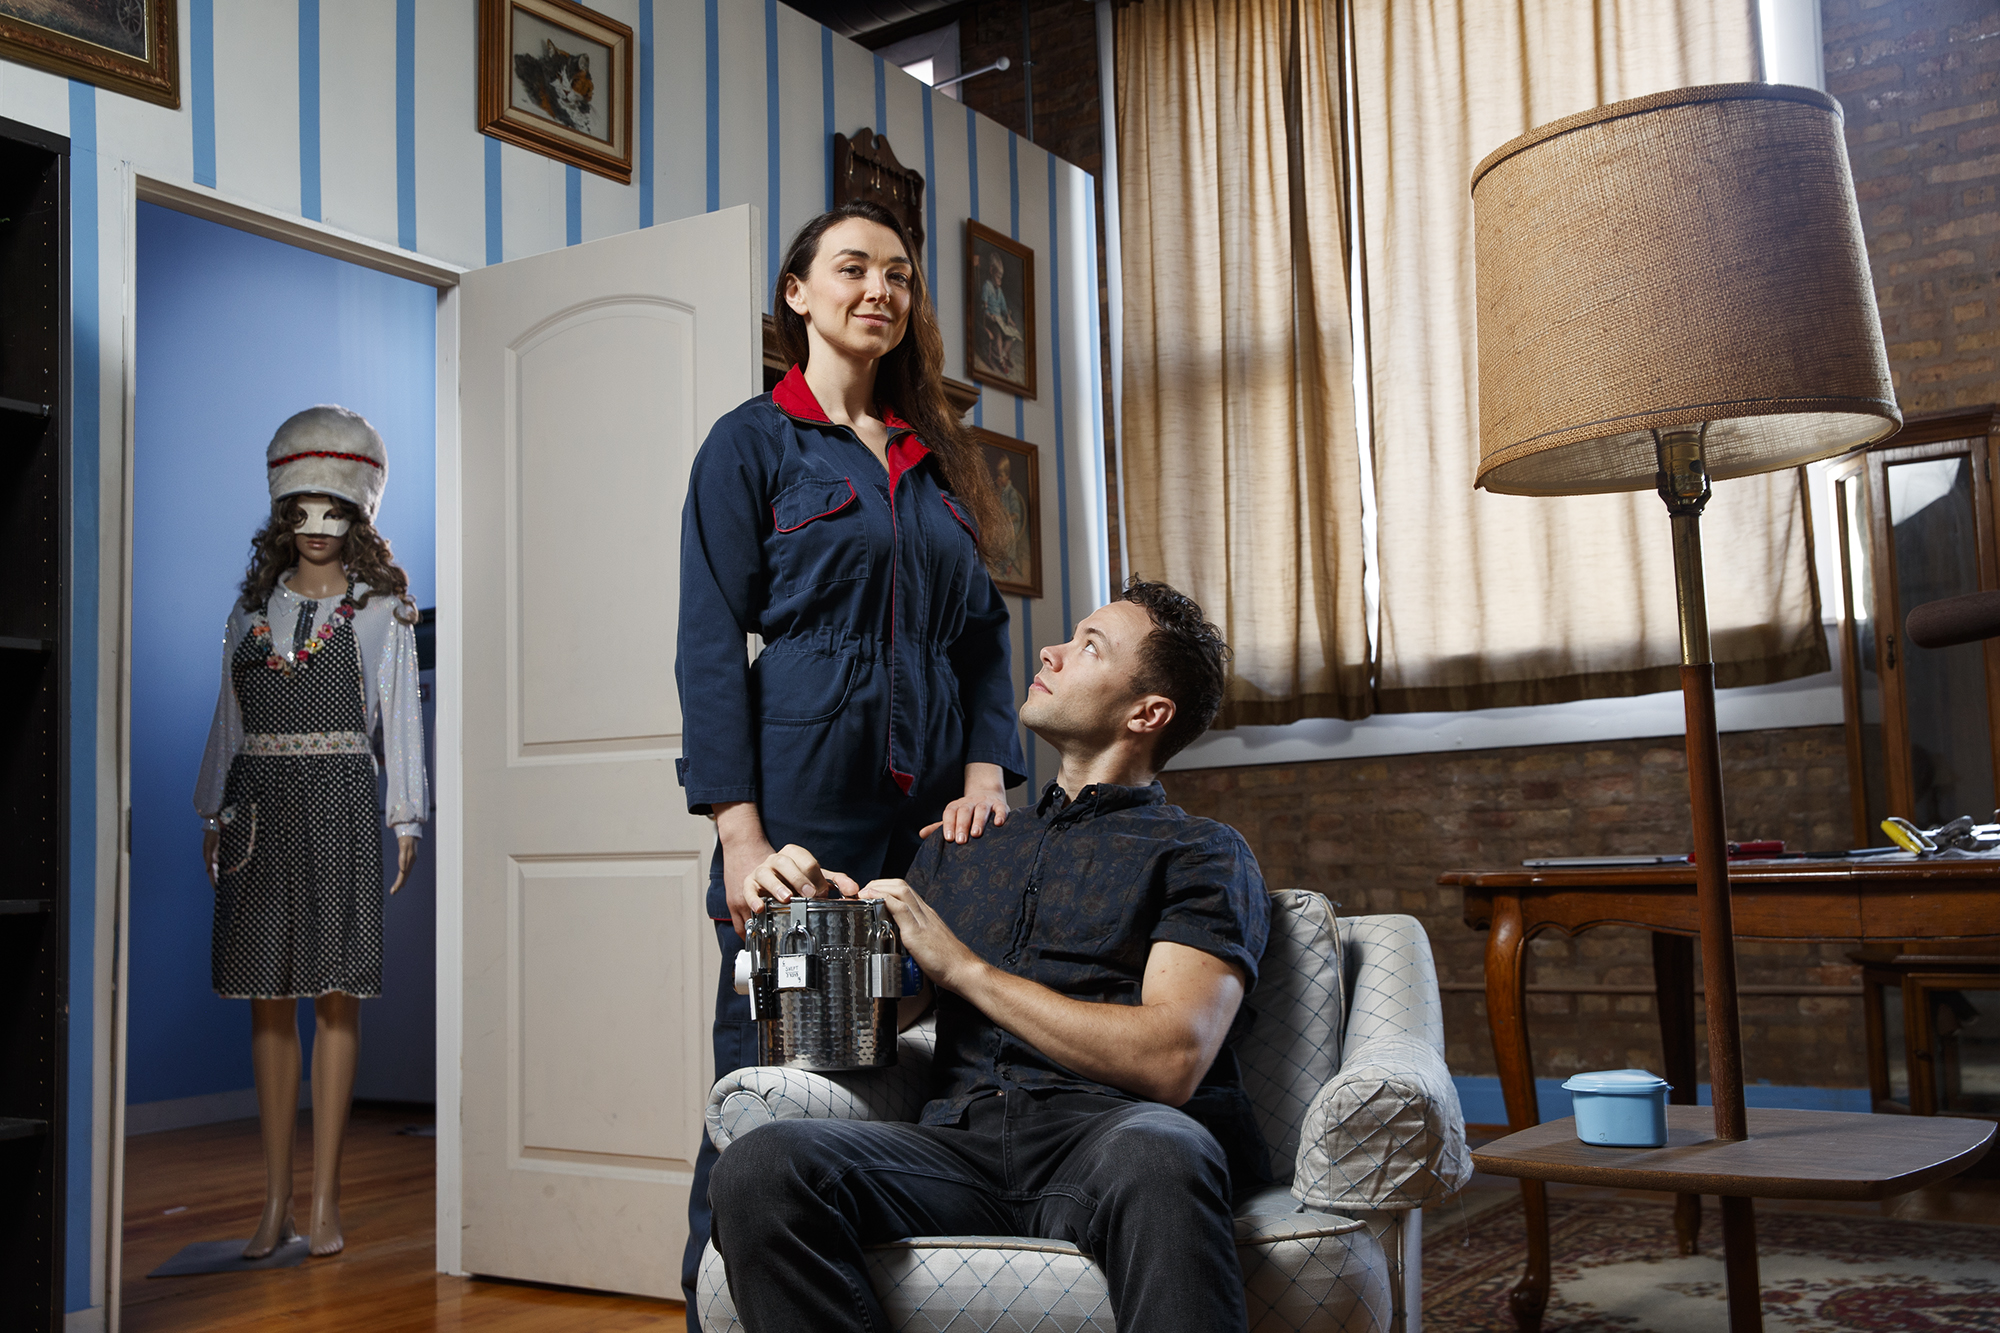 Gift Memories Tribune Photo Shoot . Woman In Blue Jumpsuit Looking At Camera While A Man Sitting In A Chair Looks Up At Her.